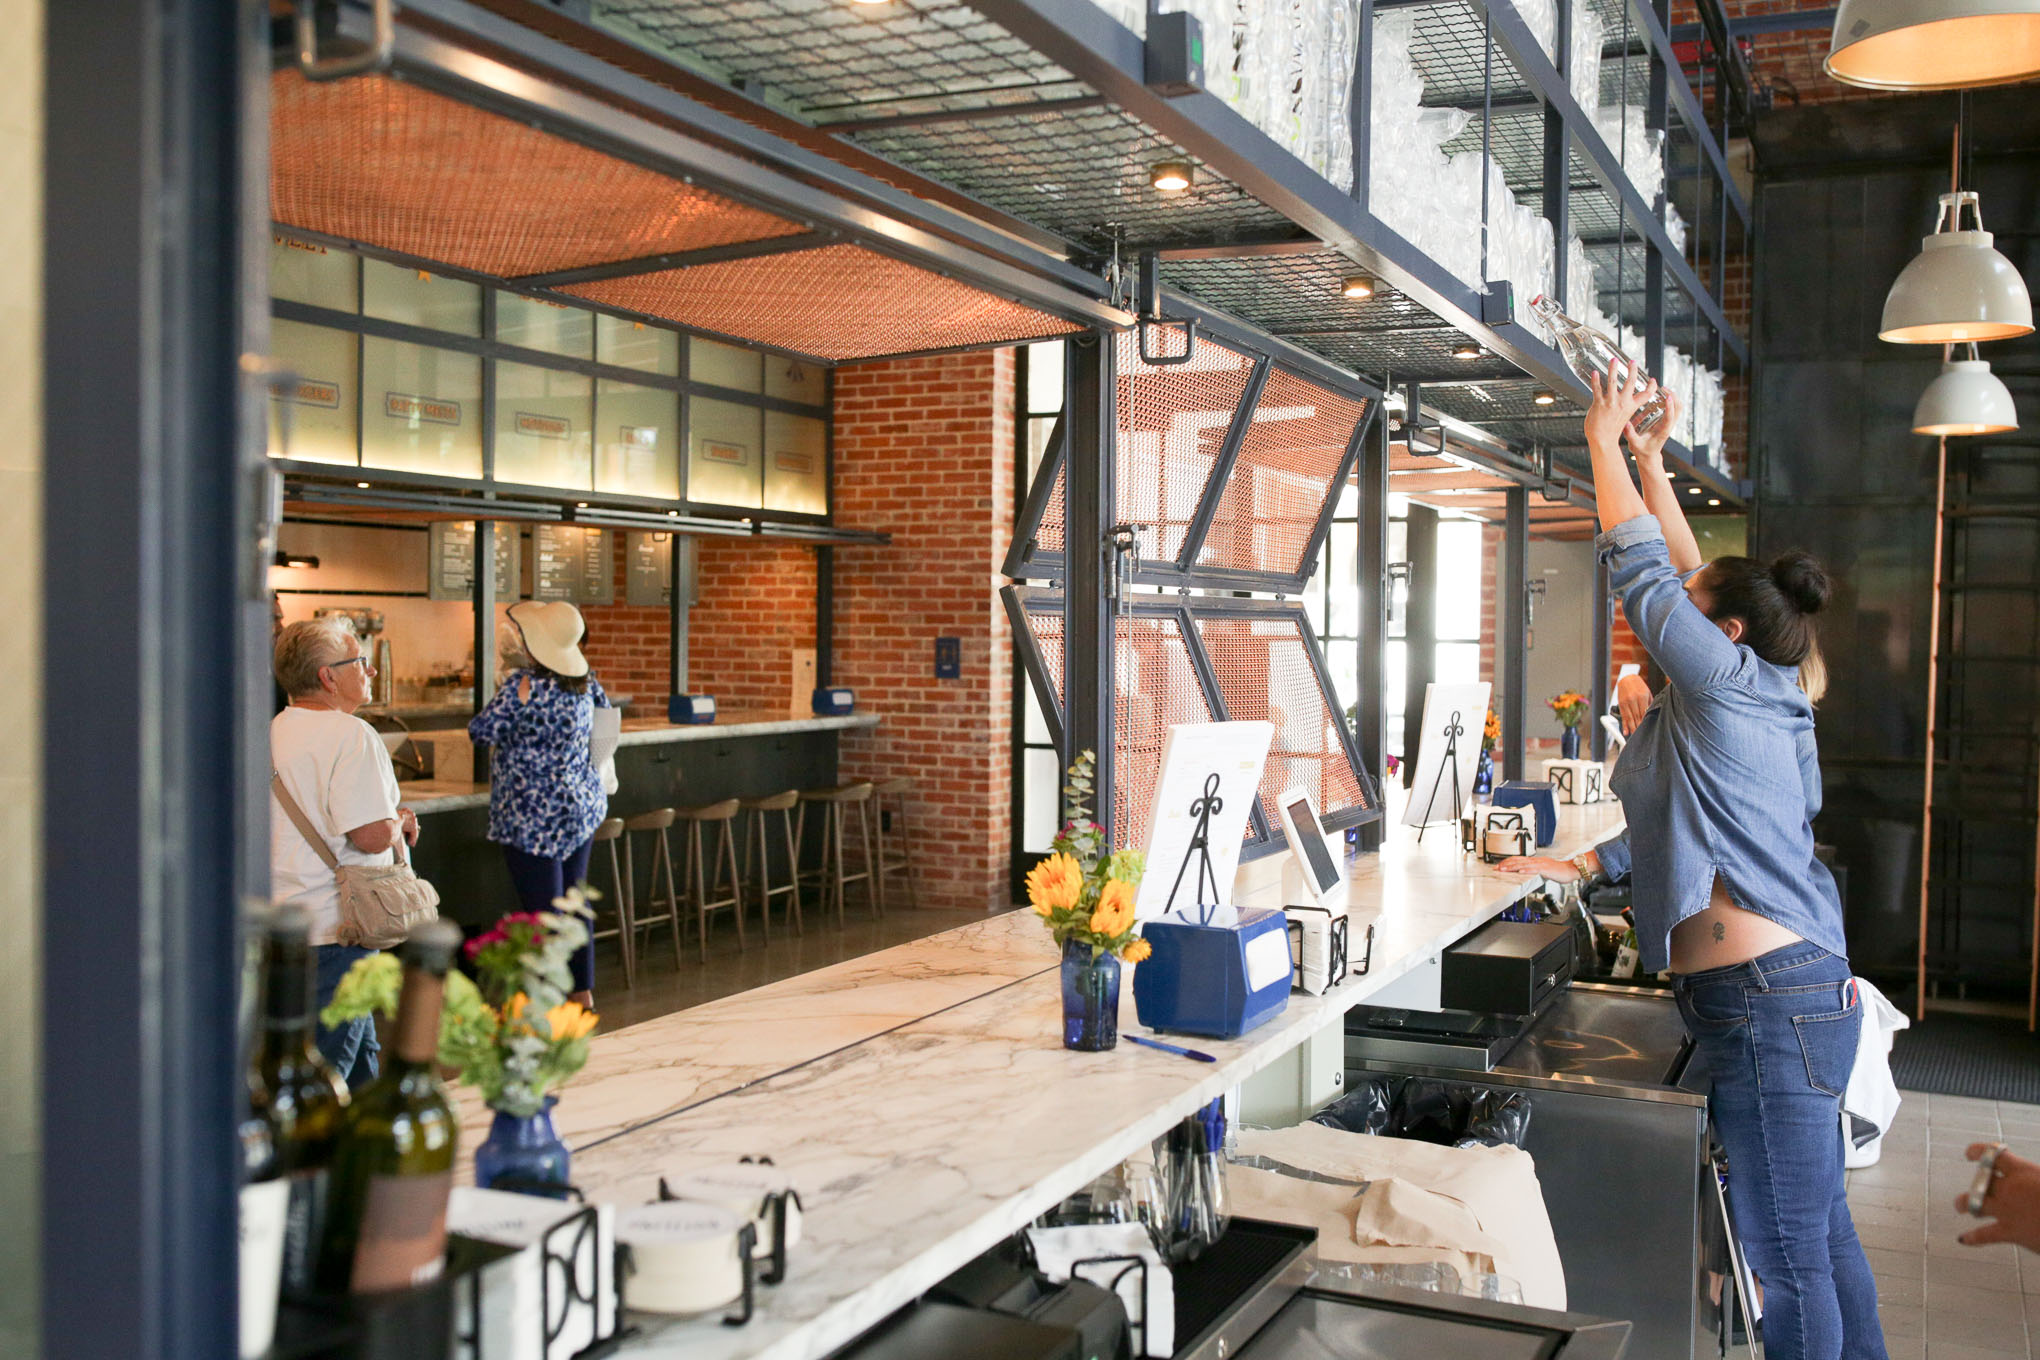 The bar at the Bottling Department opens on it's first day of service.